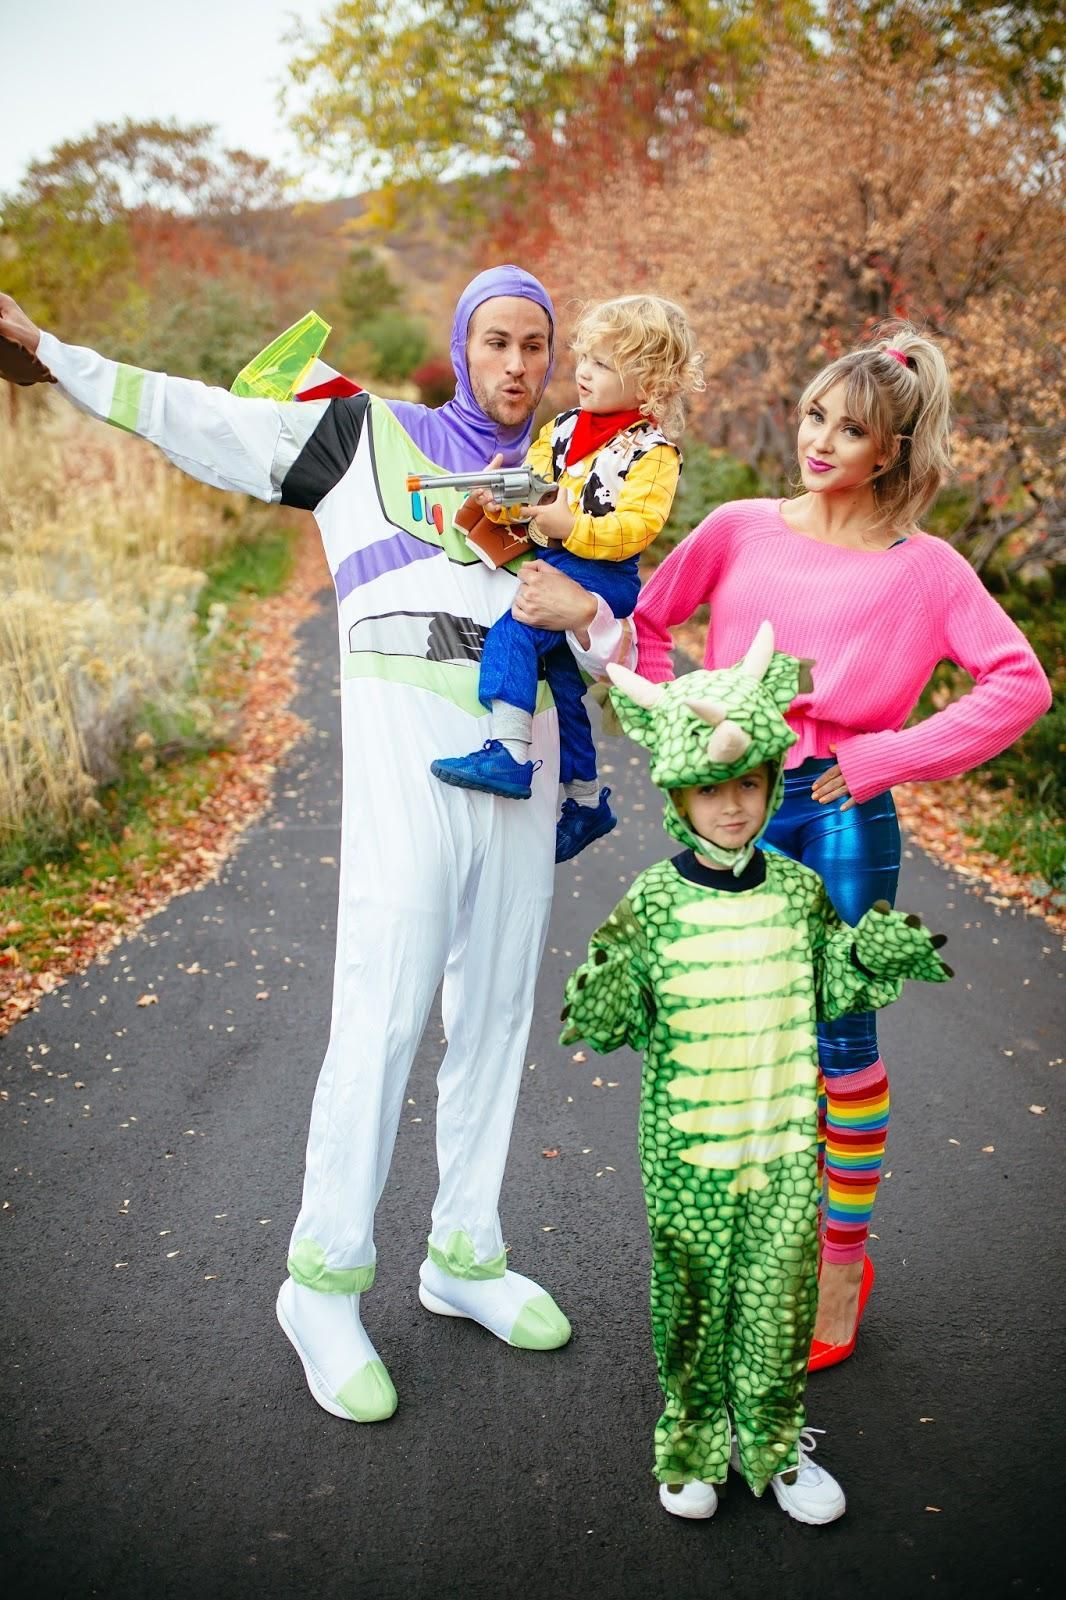 toy story family halloween costume idea | family halloween ideas in